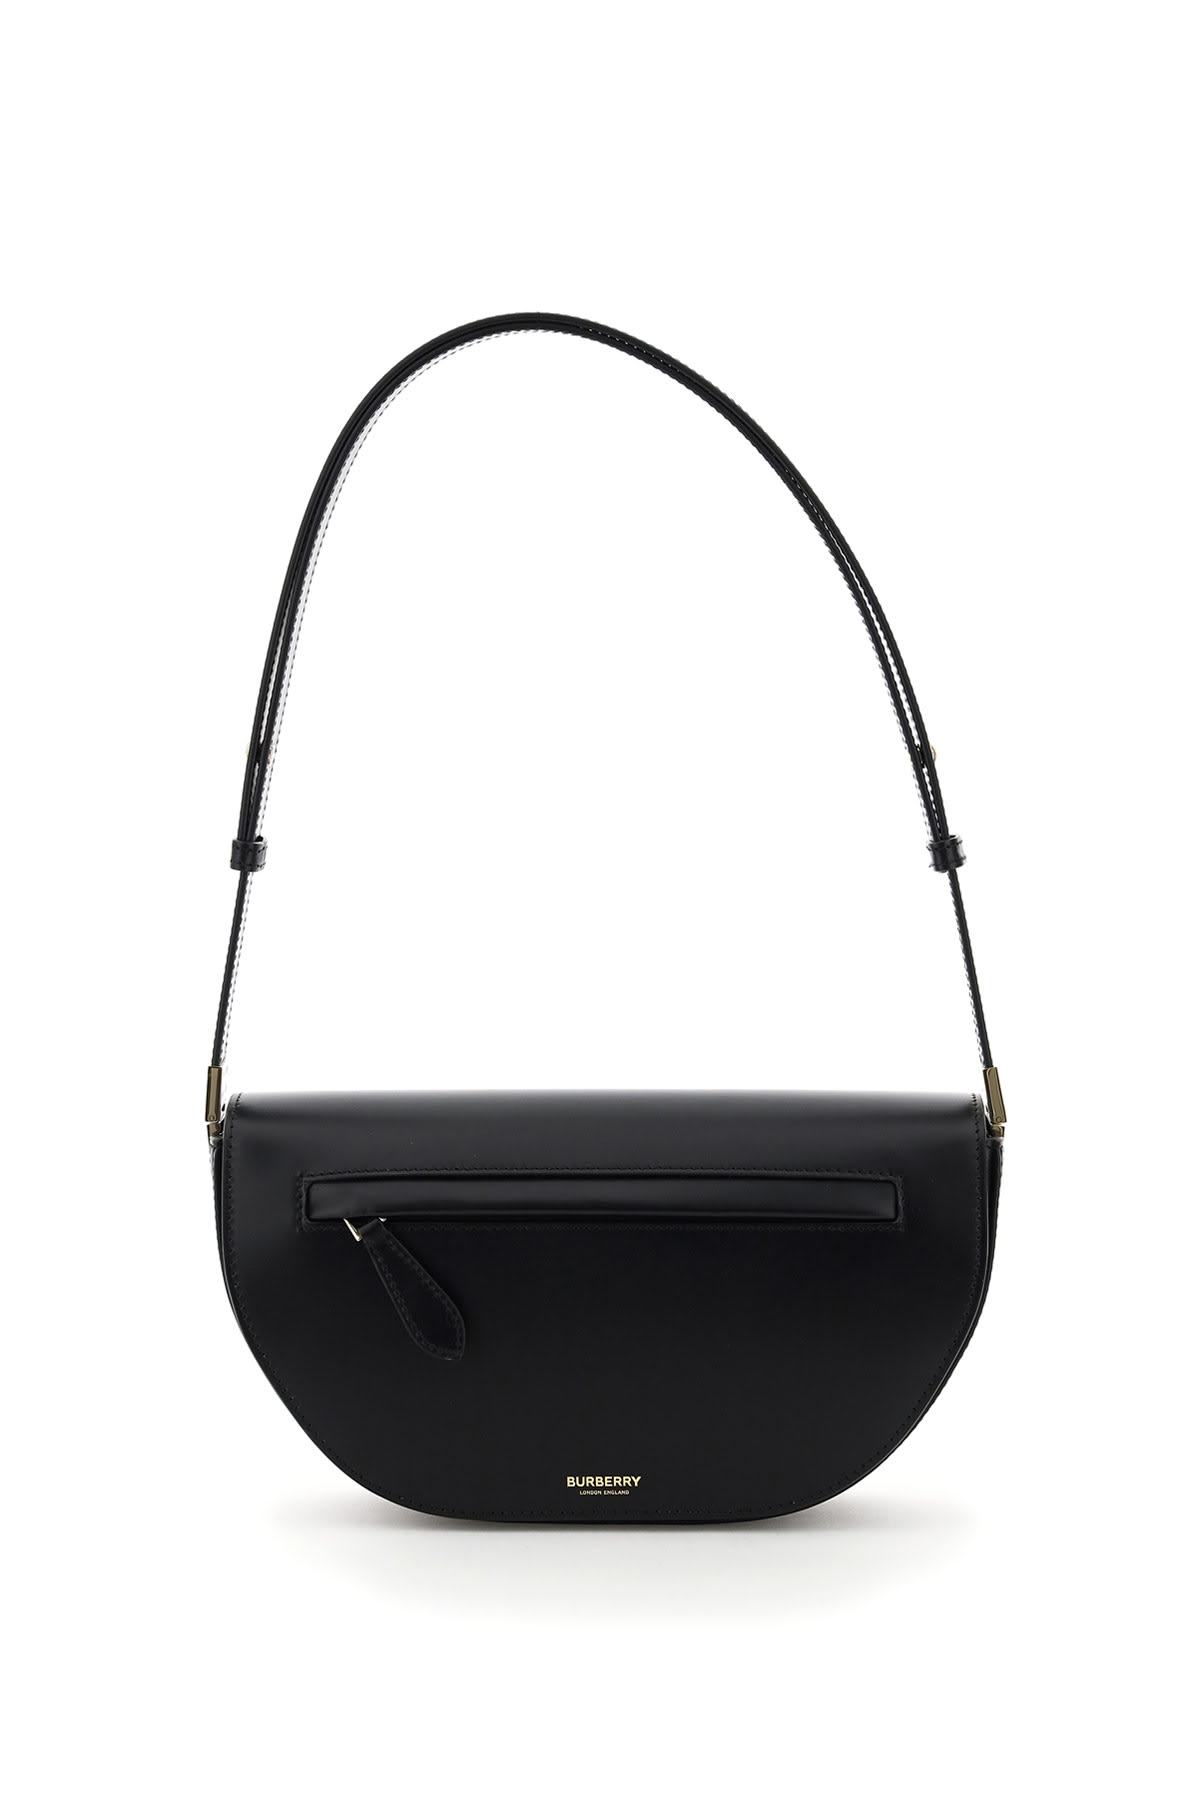 Burberry Olympia Small Shoulder Bag